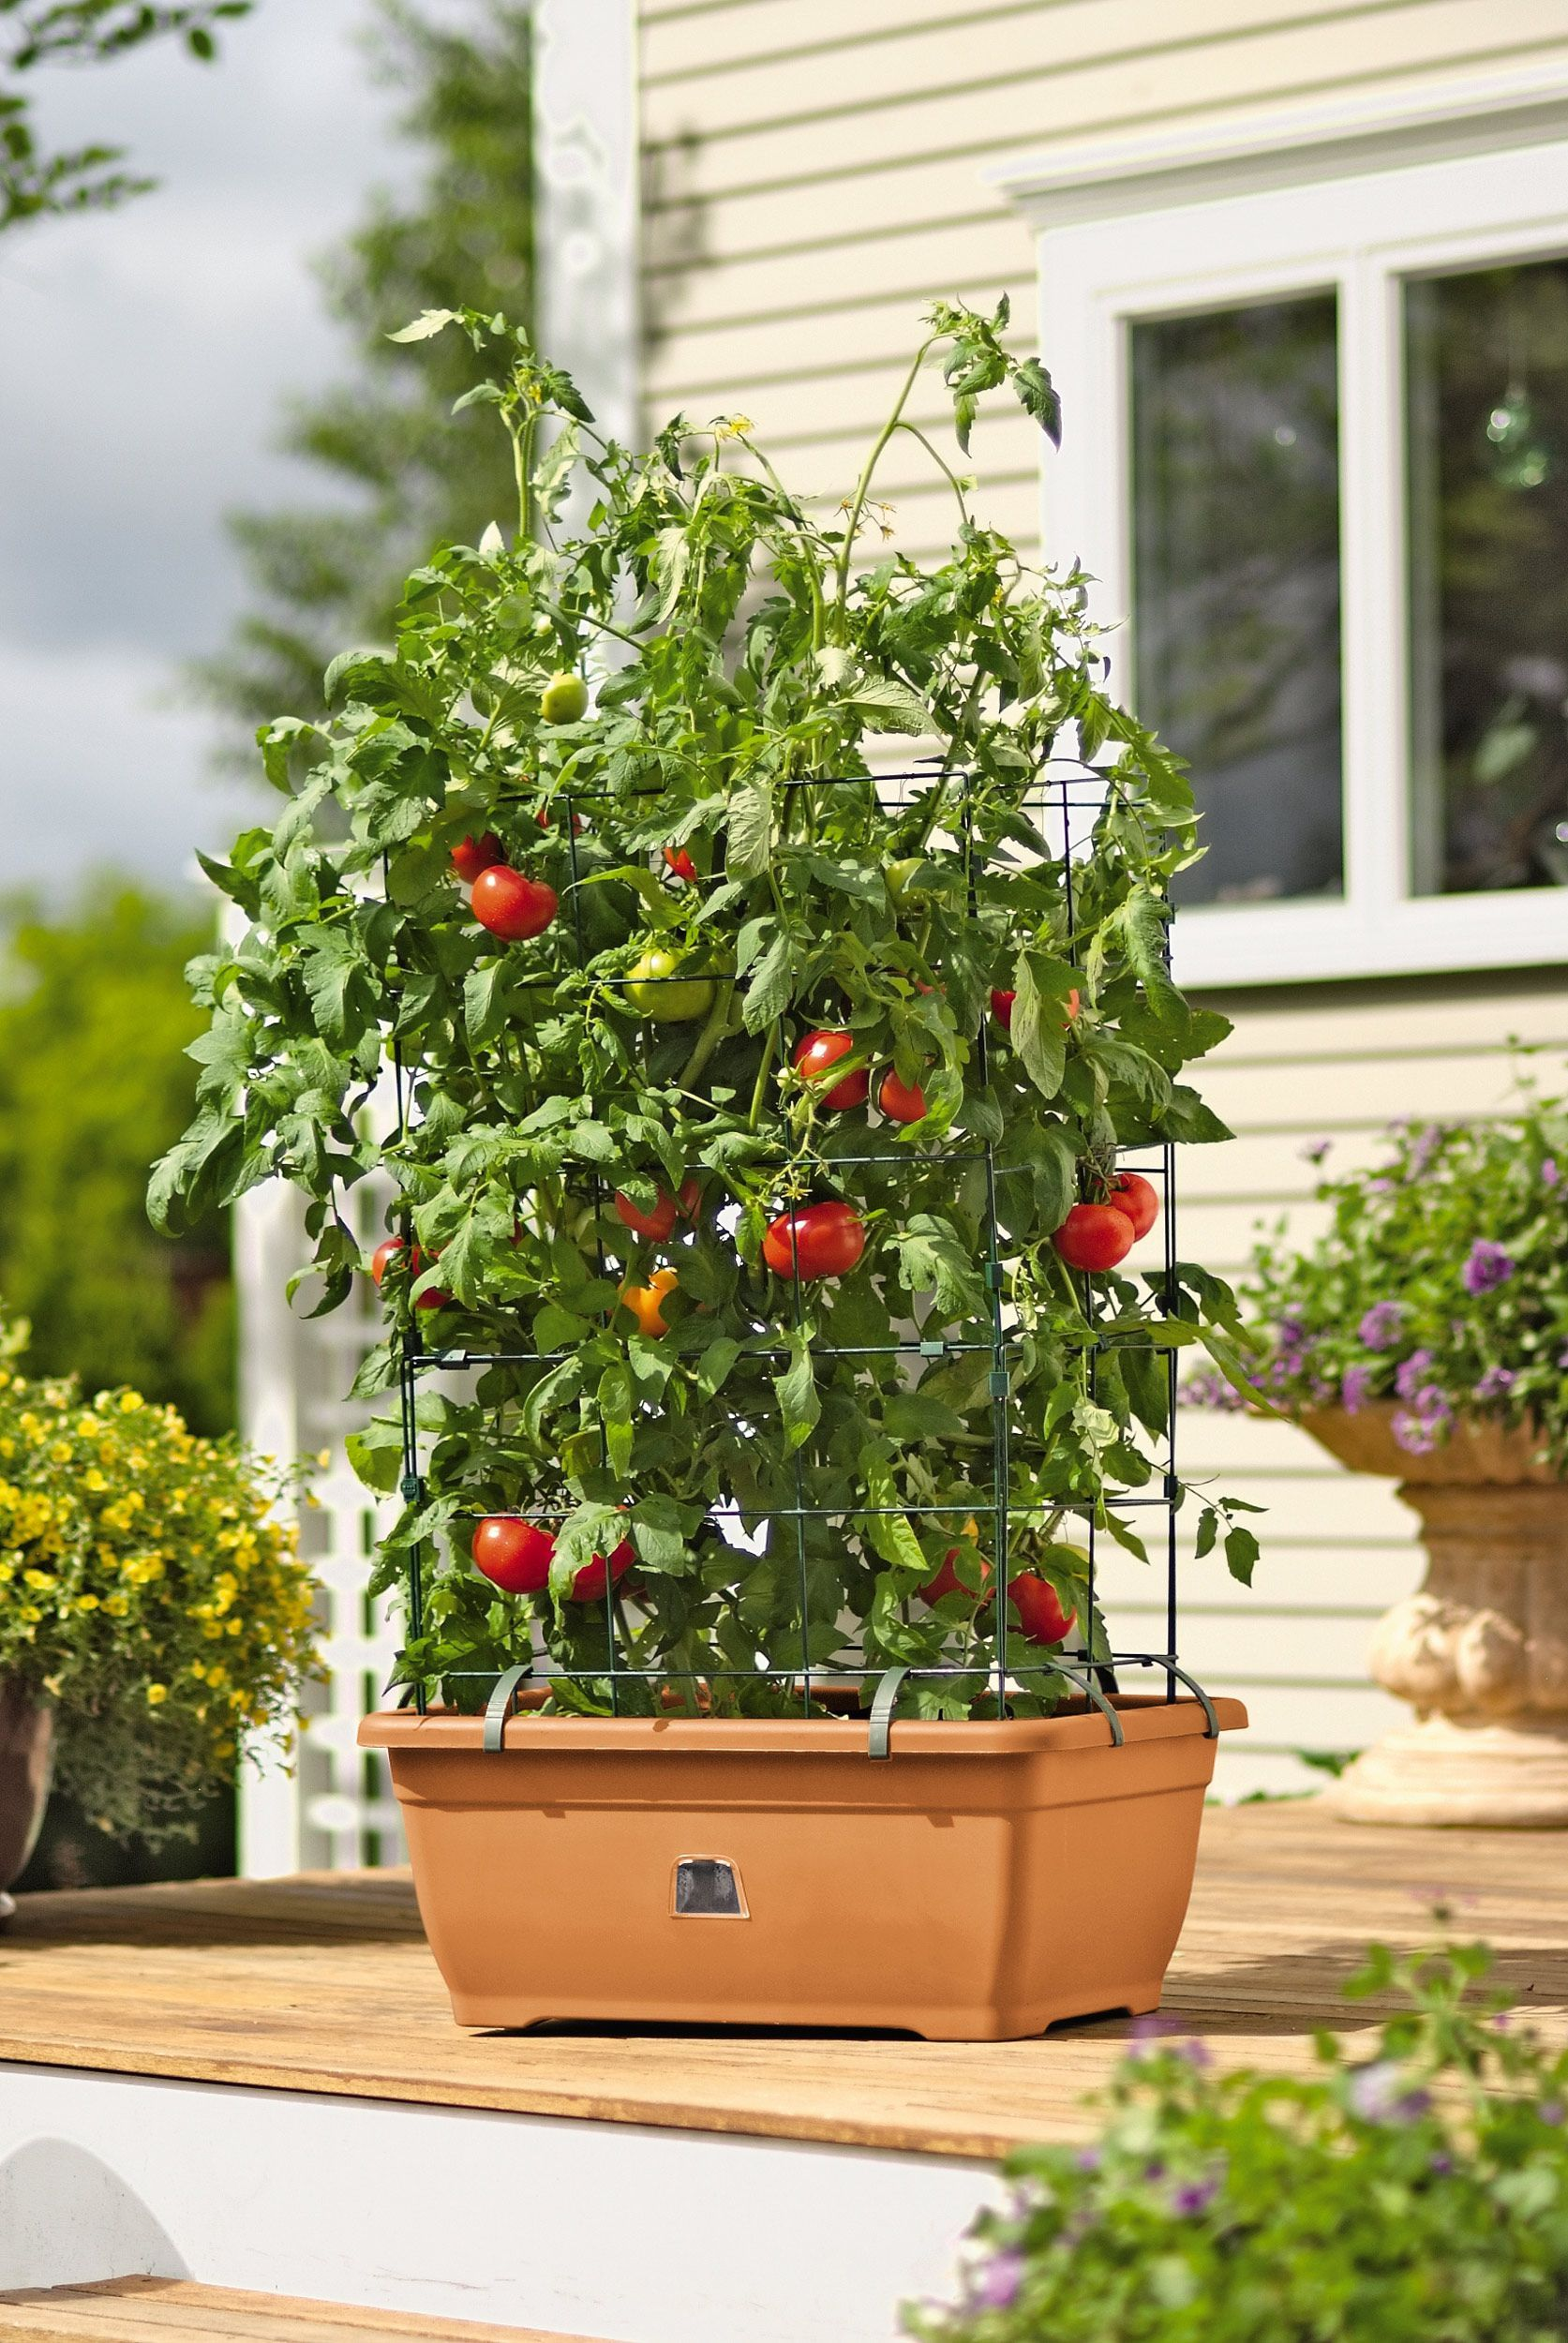 Tomato Planter - Organic Tomato Success Kit